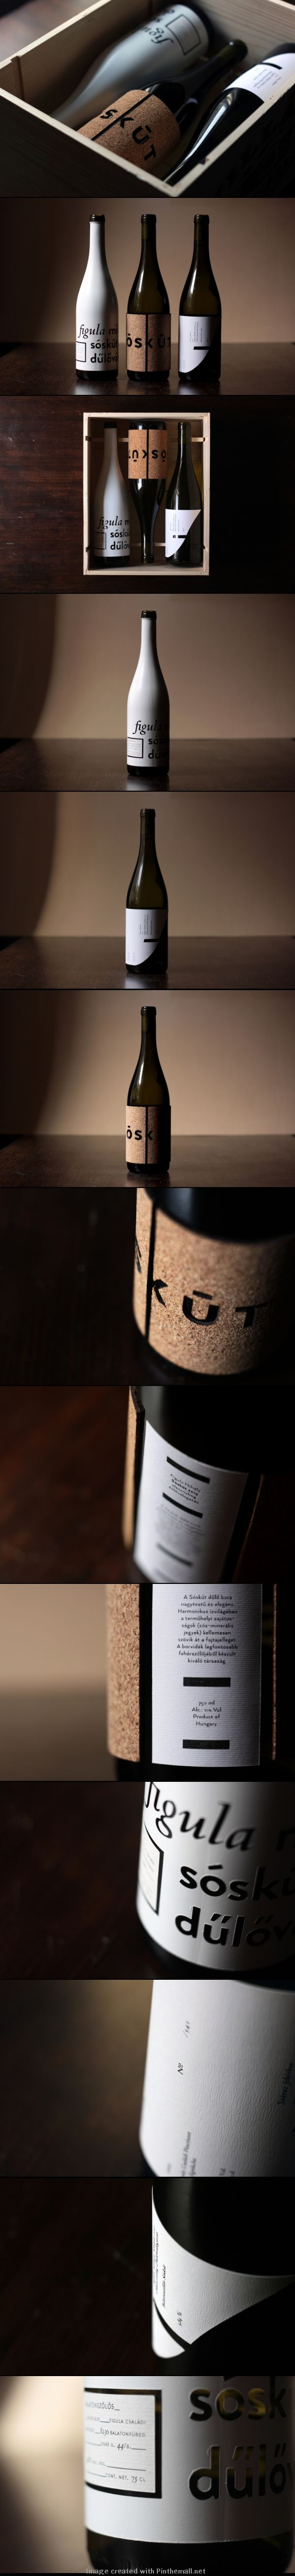 Sóskút Wine | Nice #packaging design with a strong typographical element | IG > The Dieline